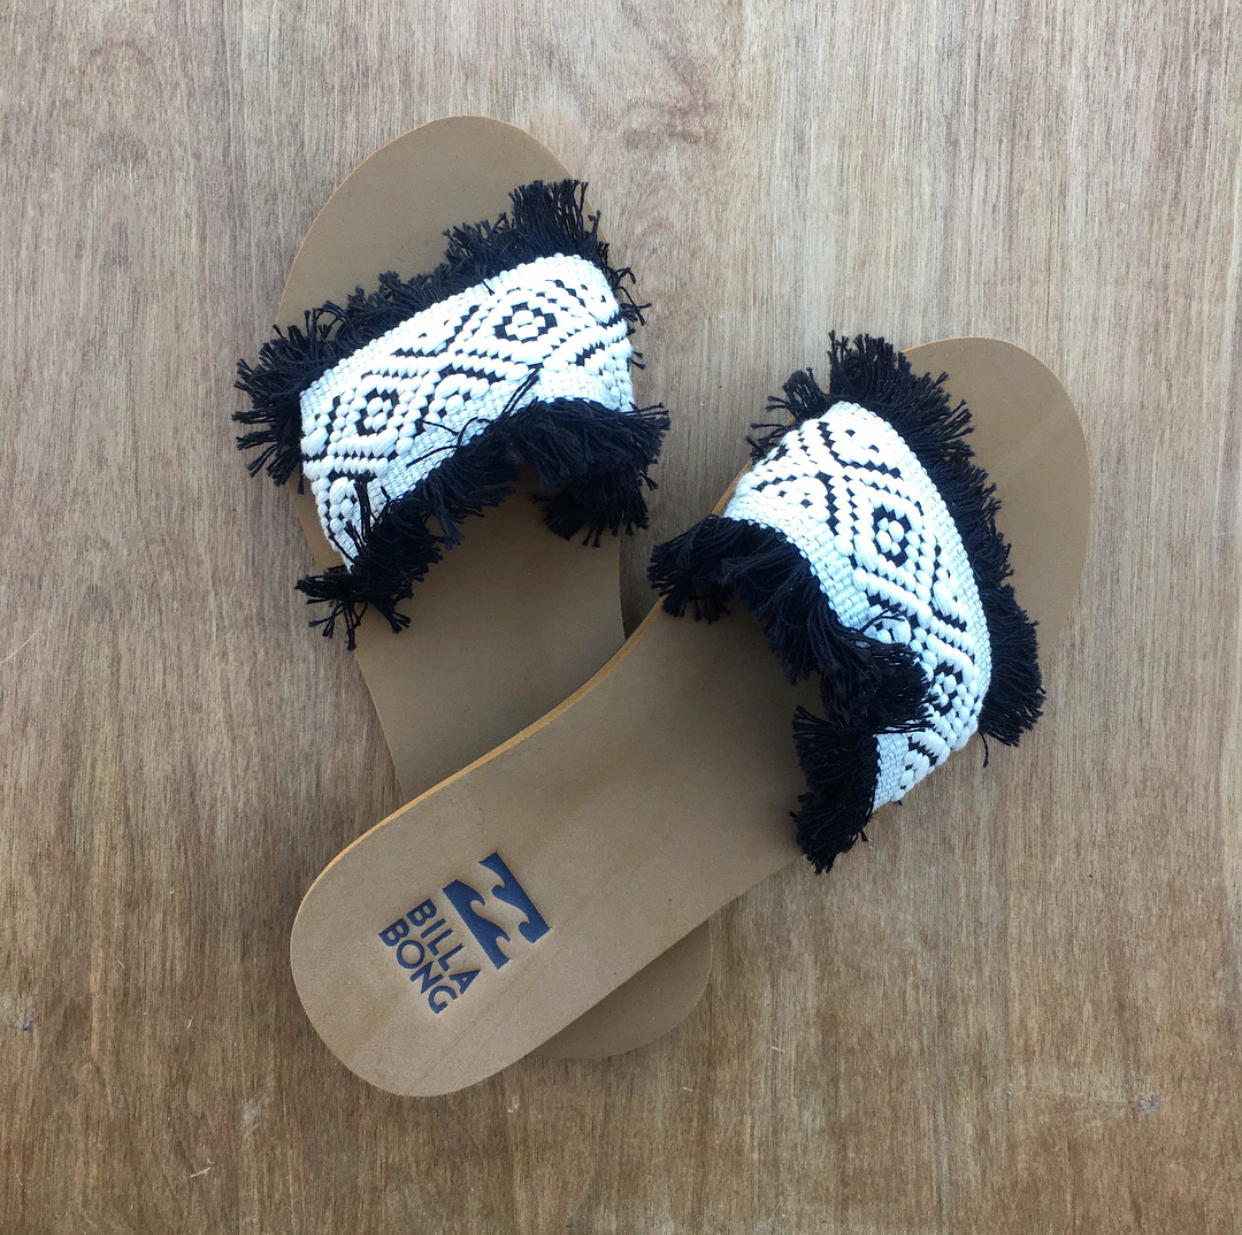 "#4 - Go-to beach brand Billabong is a spring break staple.Throw on their "" One Way"" Sandals to add a funky final touch to any look!"